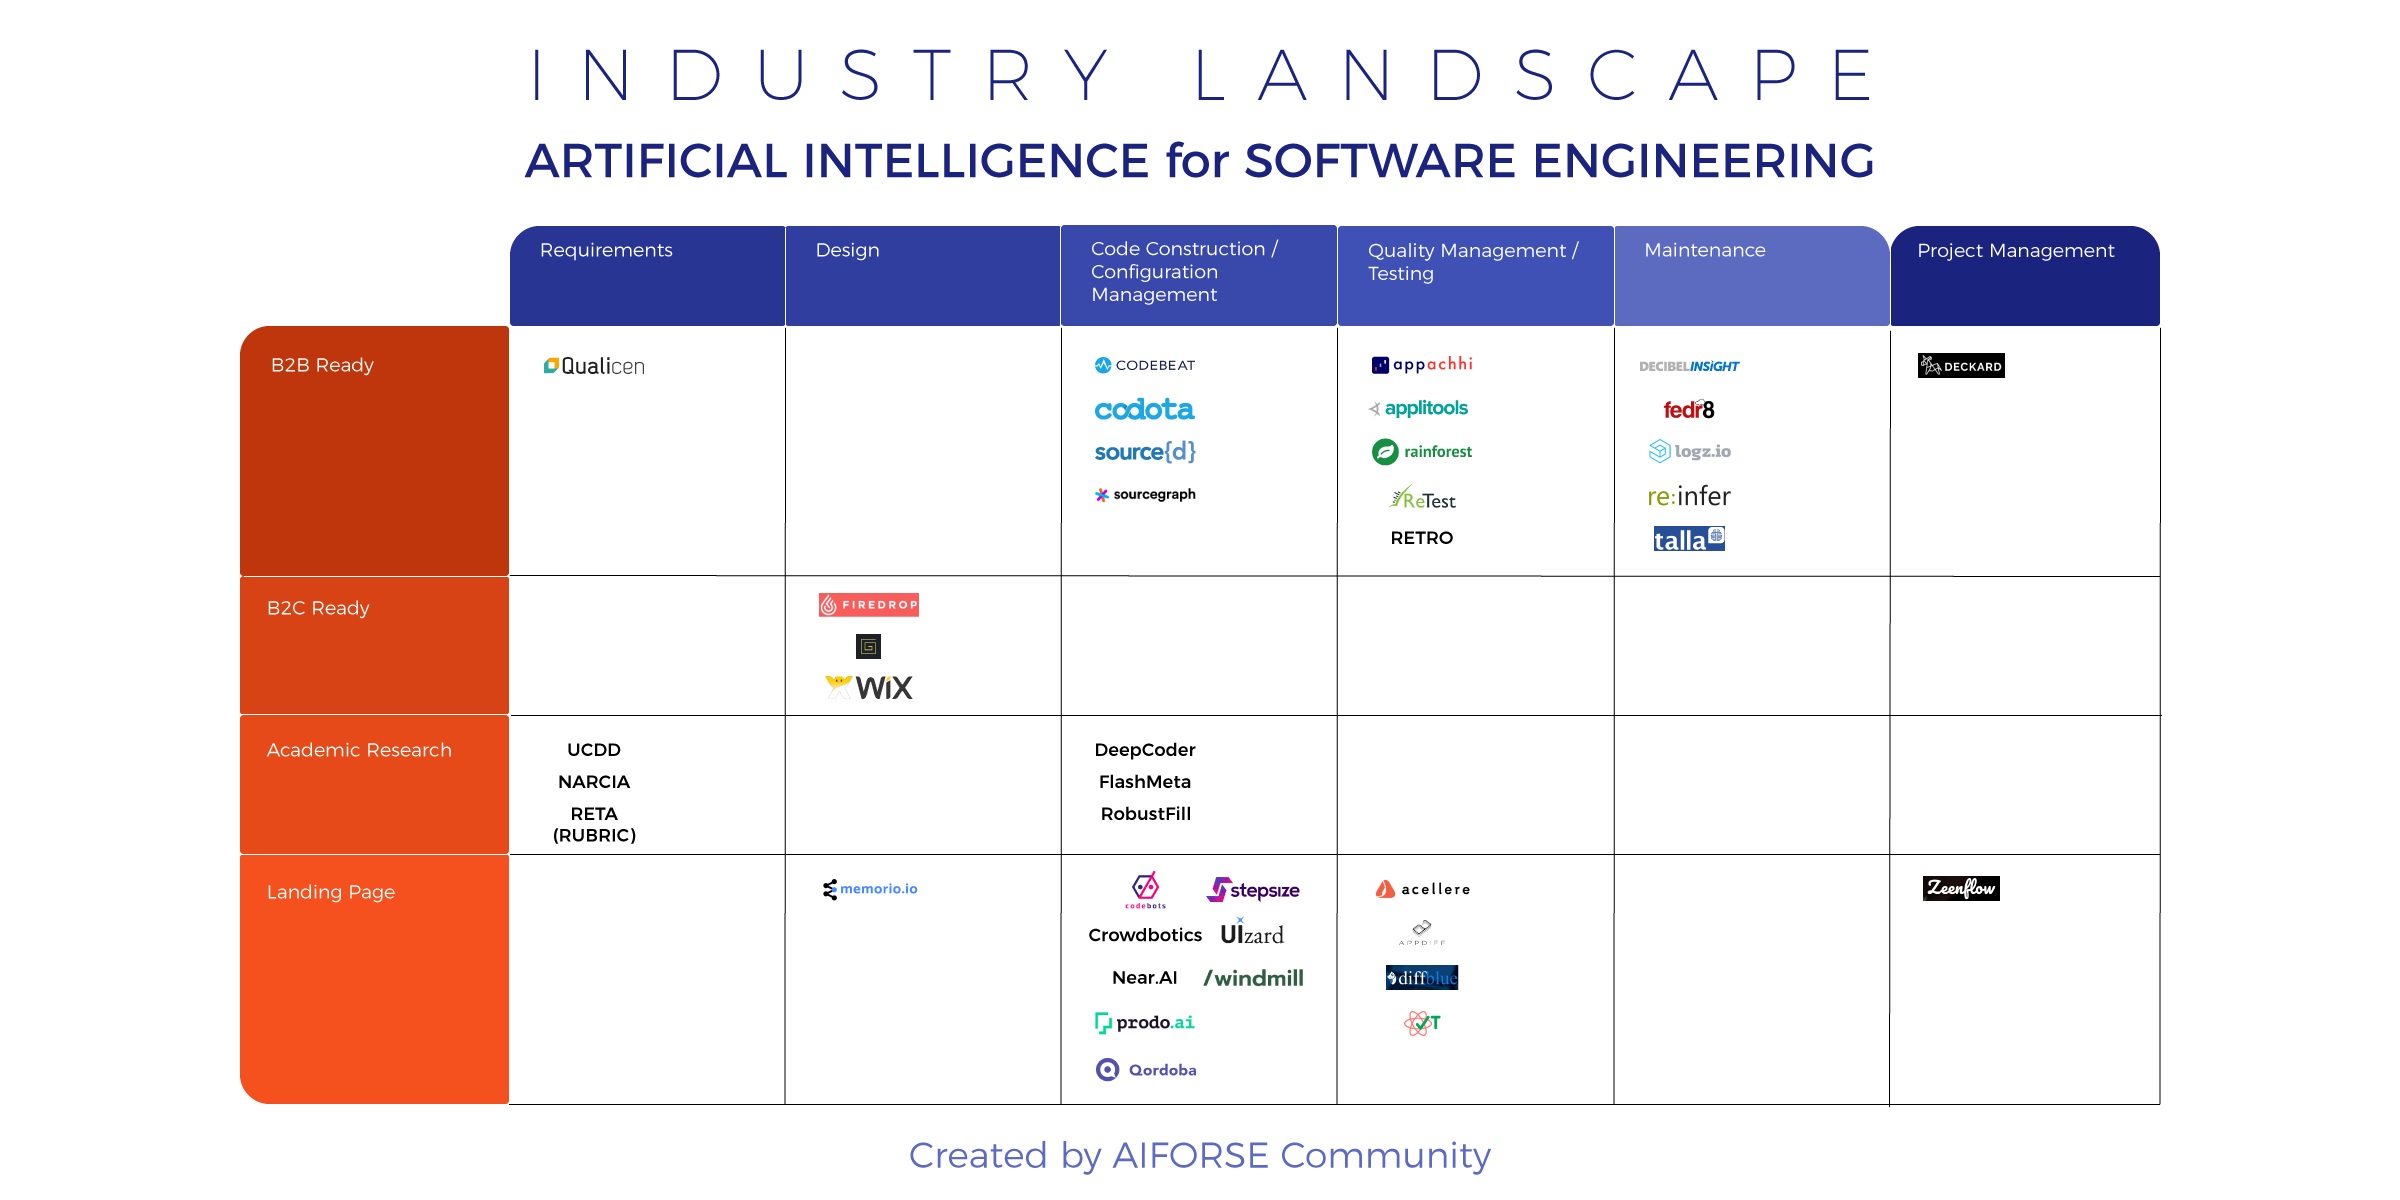 AI for SE Industry Landscape (18-Oct-2017)